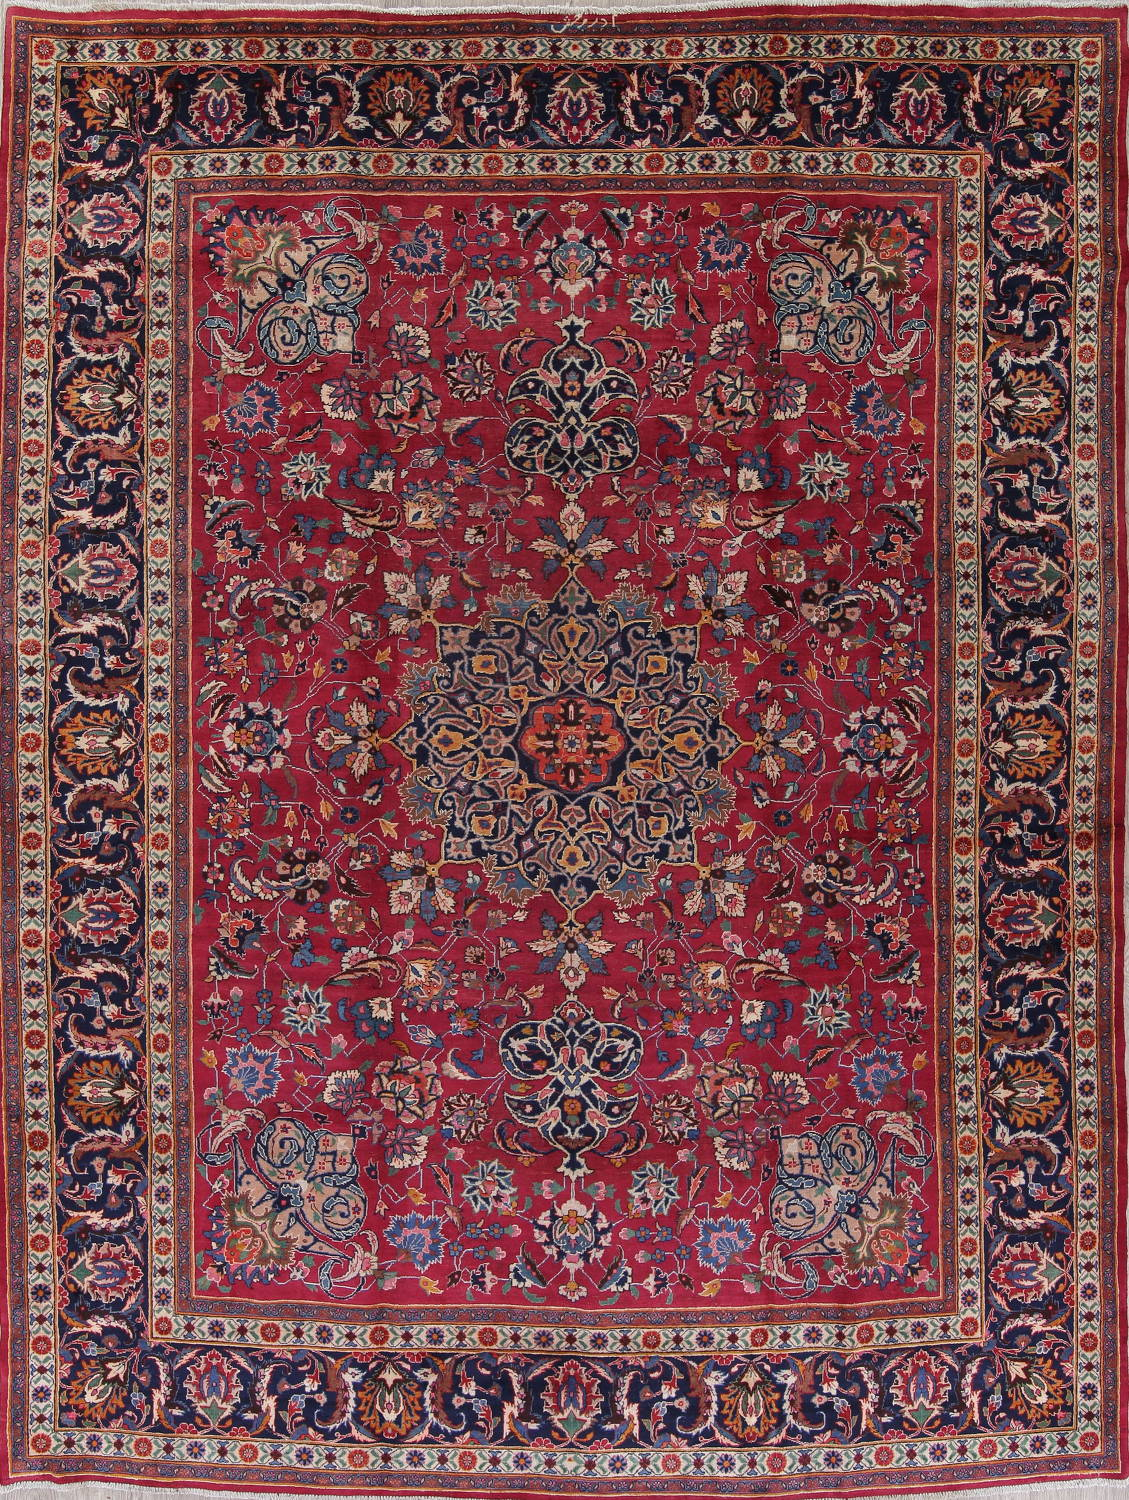 Antique Geometric Mashad Persian Hand-Knotted 10x13 Wool Area Rug image 1